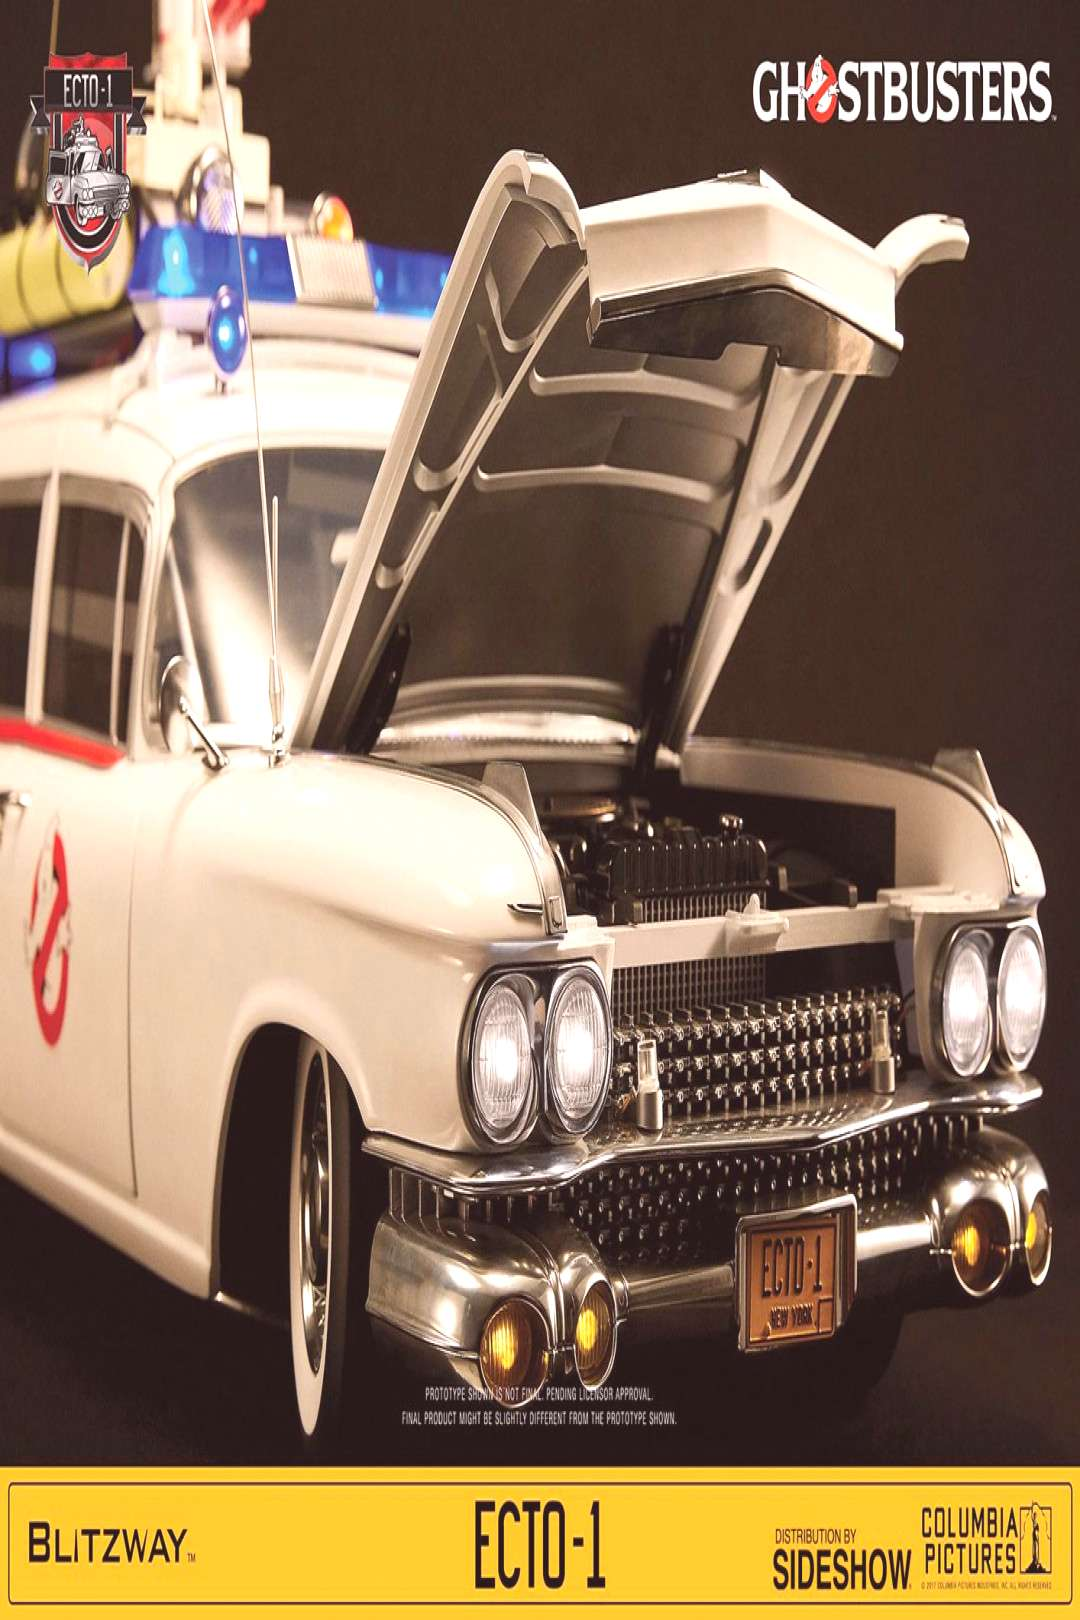 Blitzway 1/6 Scale Ghostbusters Ecto-1 Vehicle